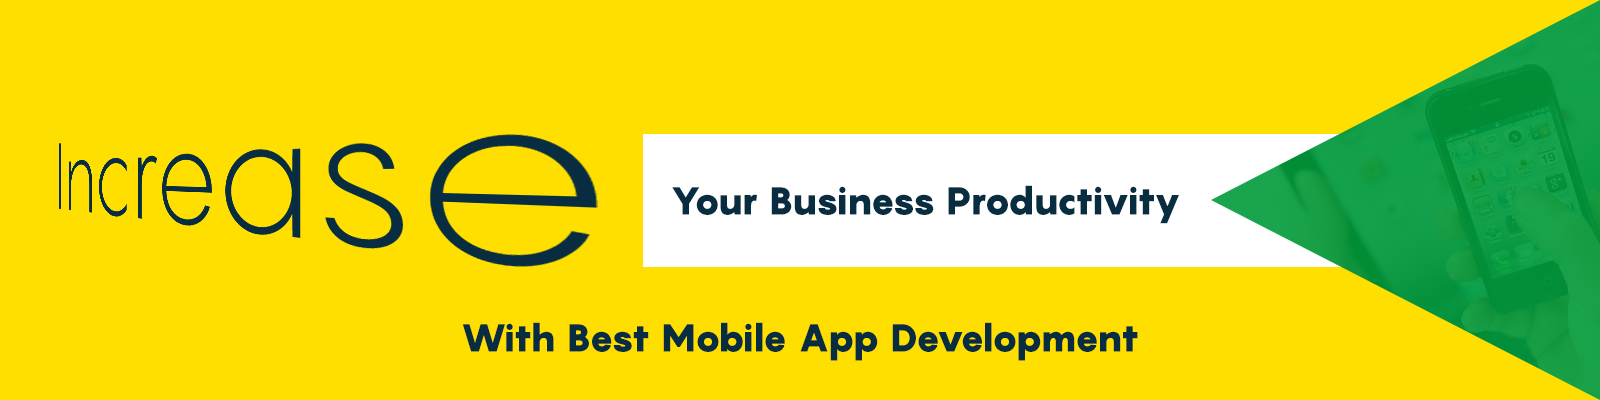 mobile app development company brazil